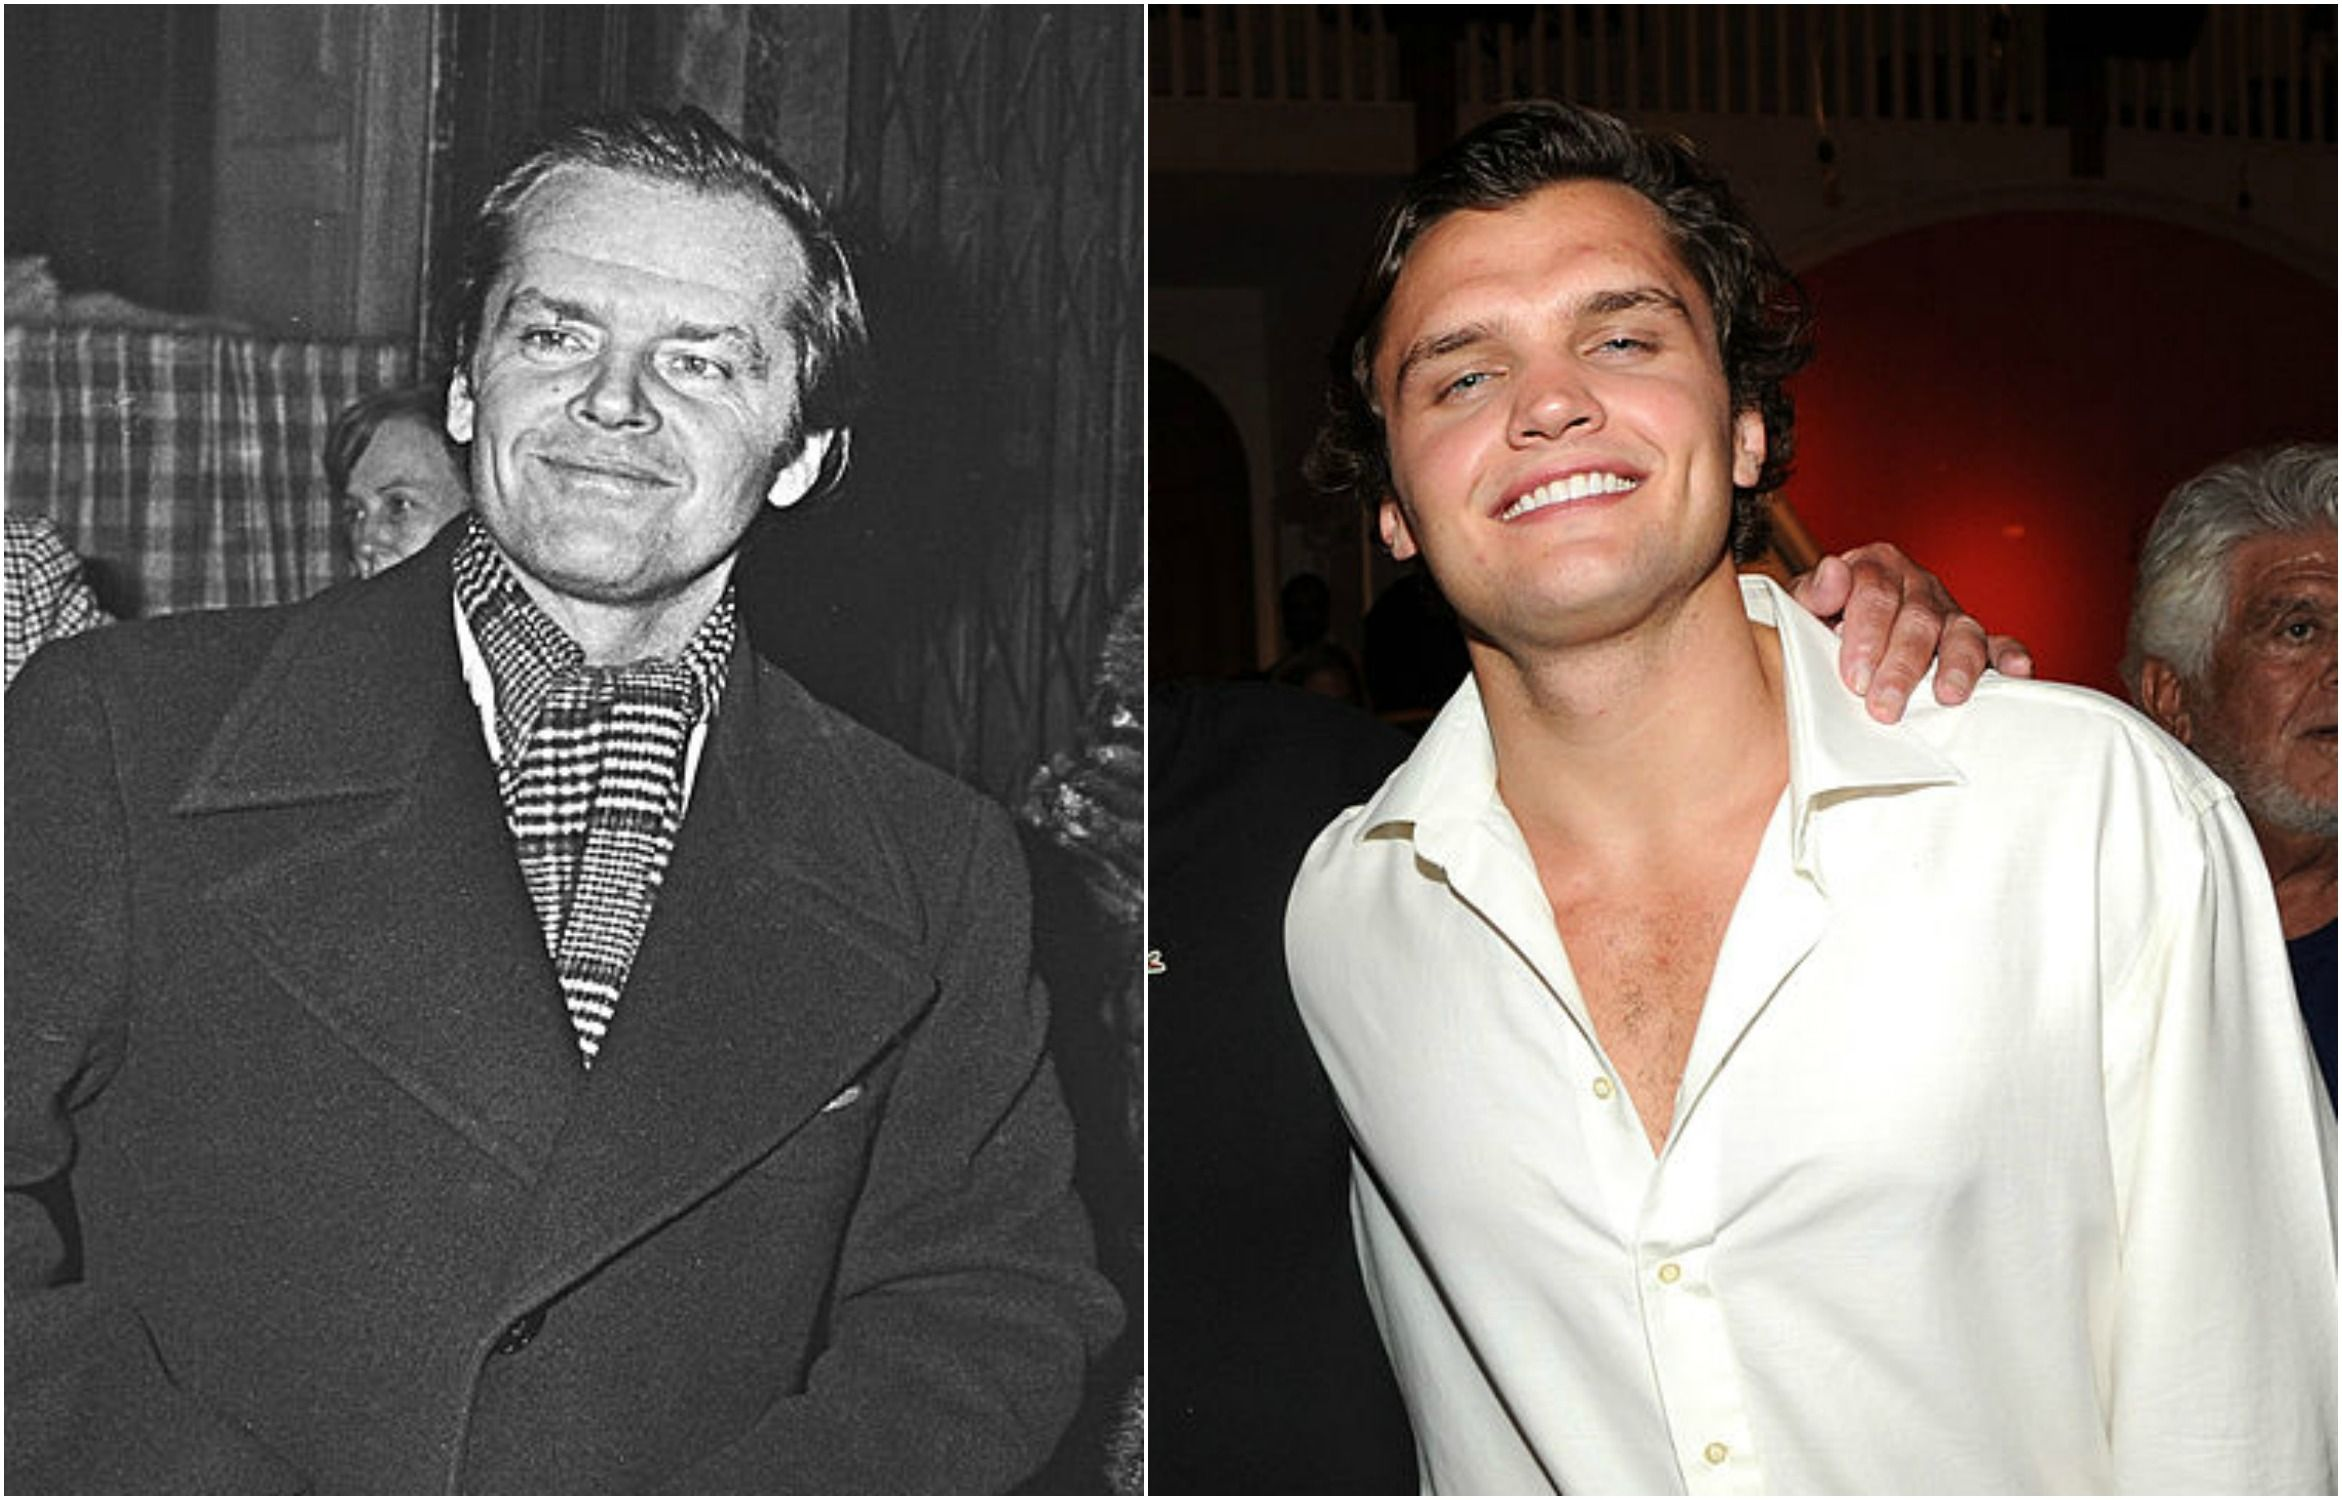 Jack Nicholson Son Celebrity Lookalikes The best actor twice, for one flew over the cuckoo's nest and as good as it gets. jack nicholson son celebrity lookalikes